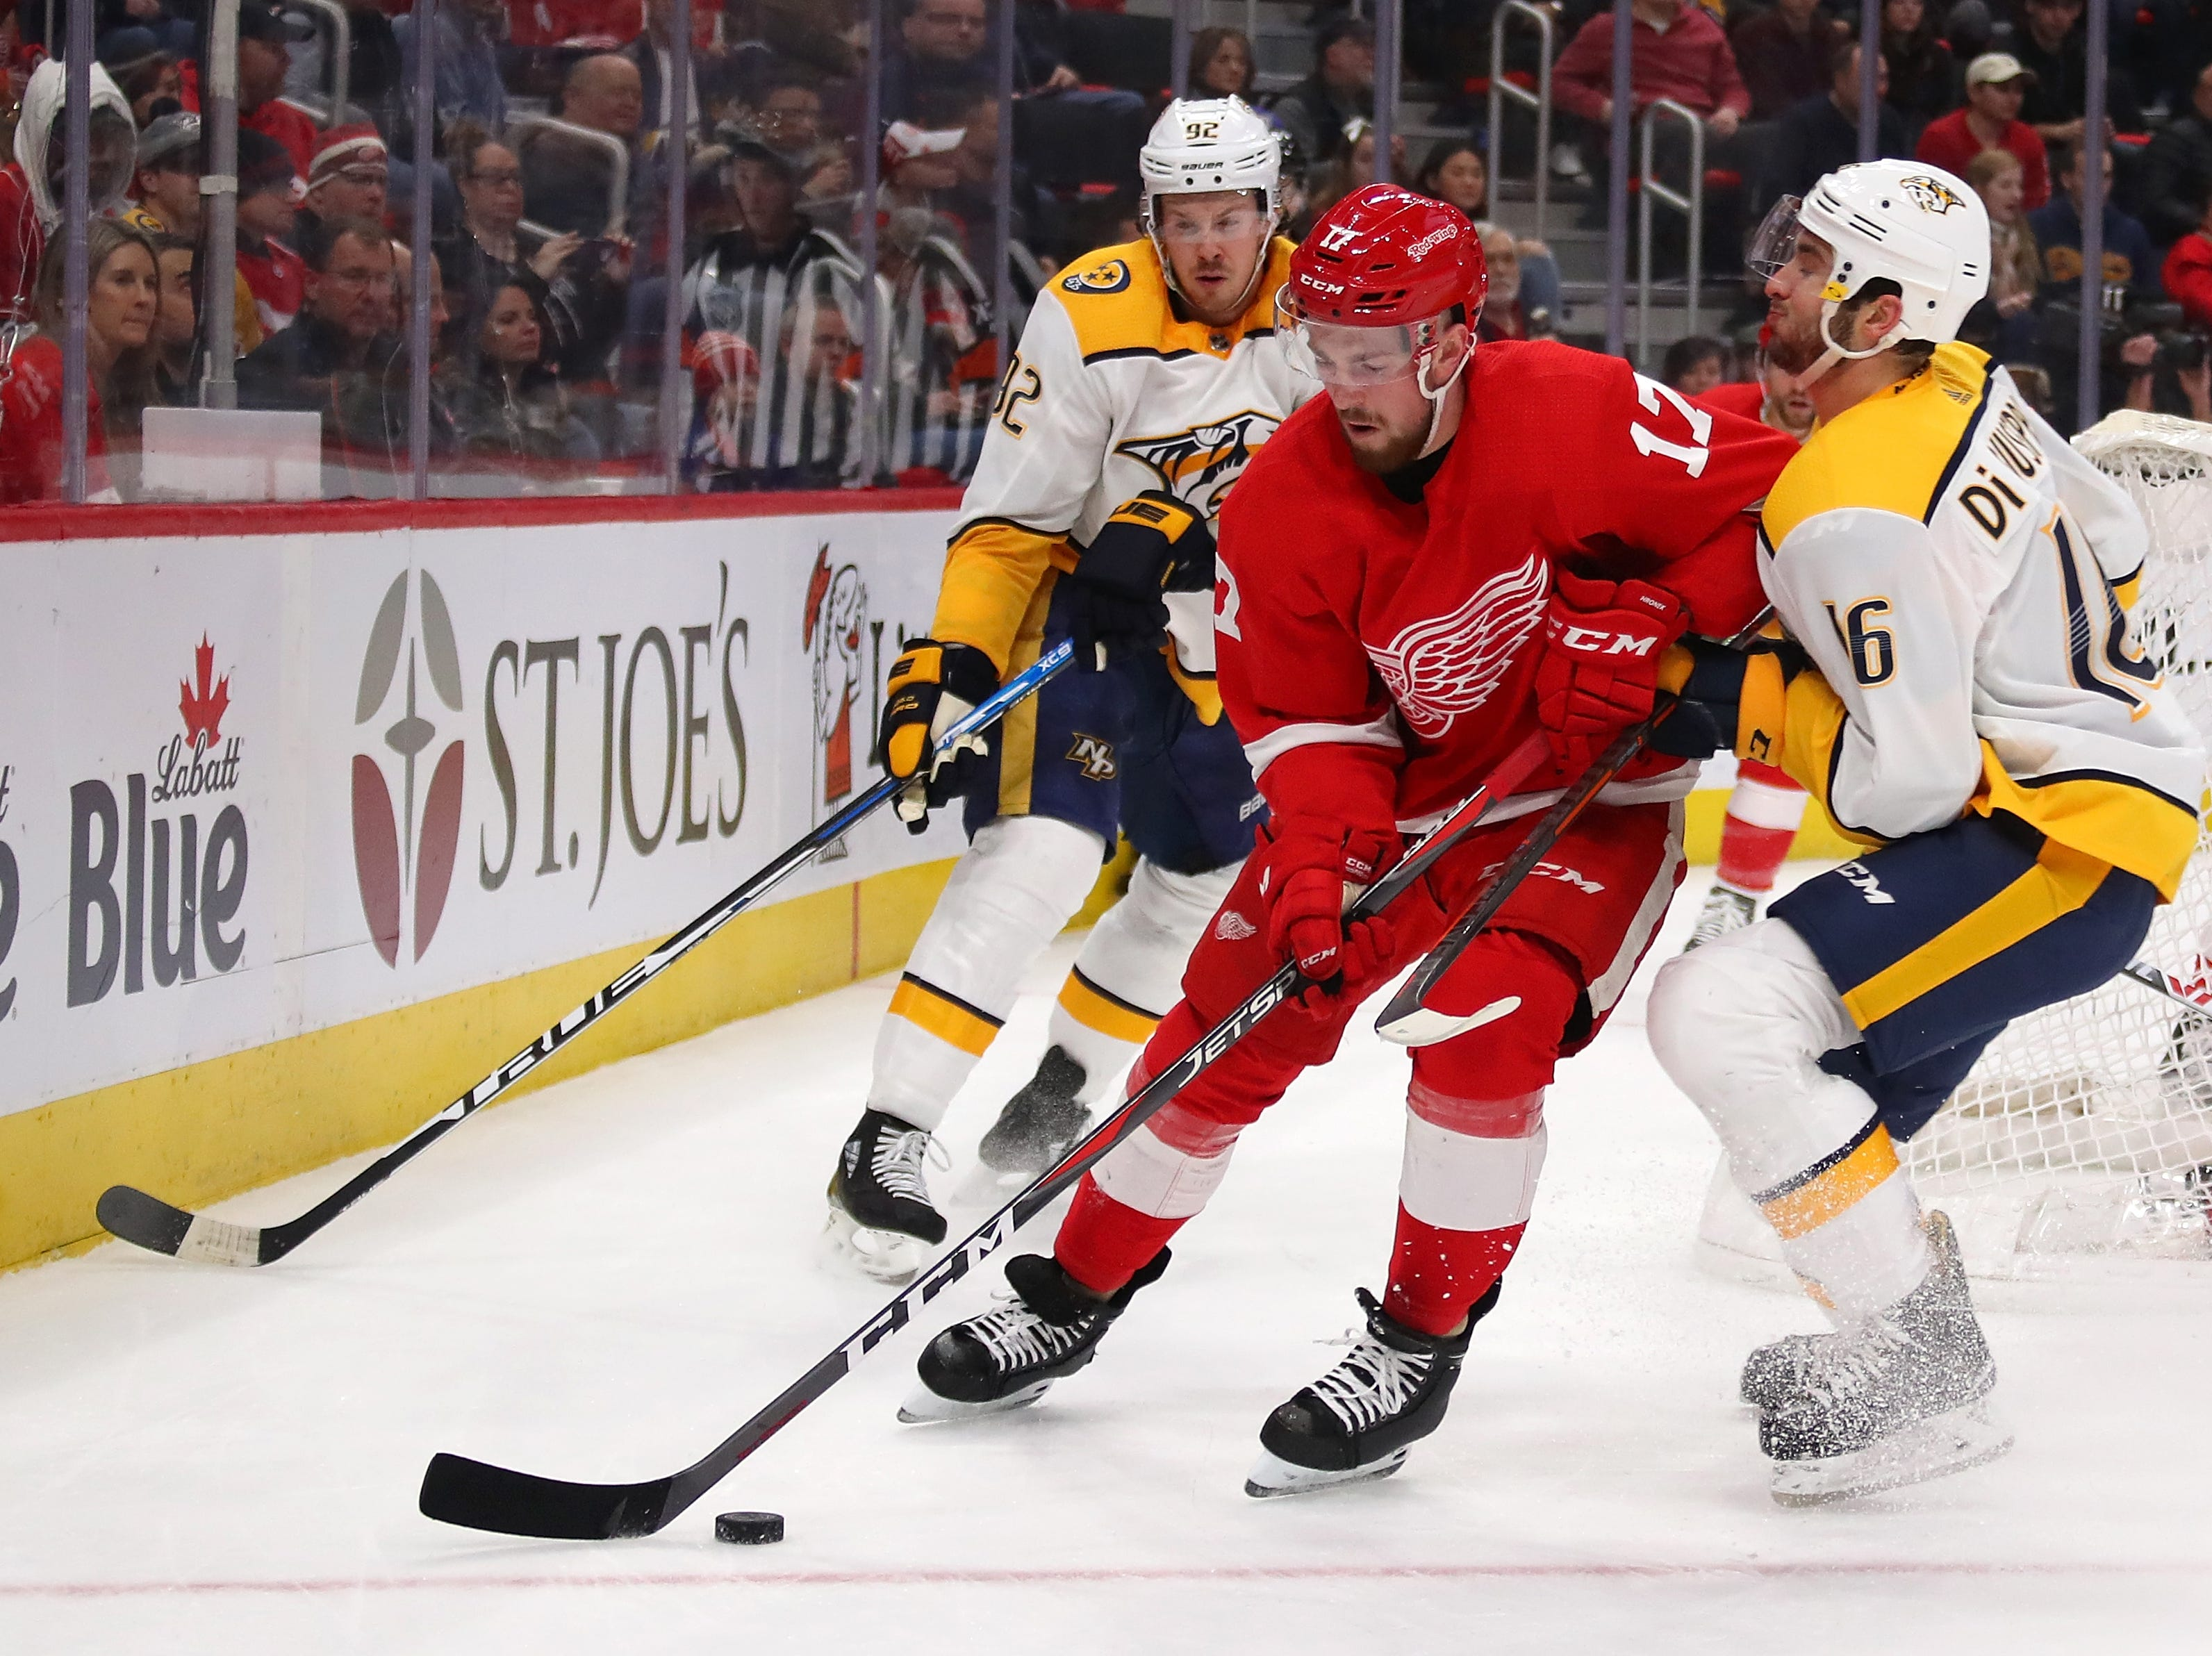 DETROIT, MICHIGAN - JANUARY 04:  Filip Hronek #17 of the Detroit Red Wings battles for the puck against Phillip Di Giuseppe #16 of the Nashville Predators during the first period at Little Caesars Arena on January 04, 2019 in Detroit, Michigan. (Photo by Gregory Shamus/Getty Images)